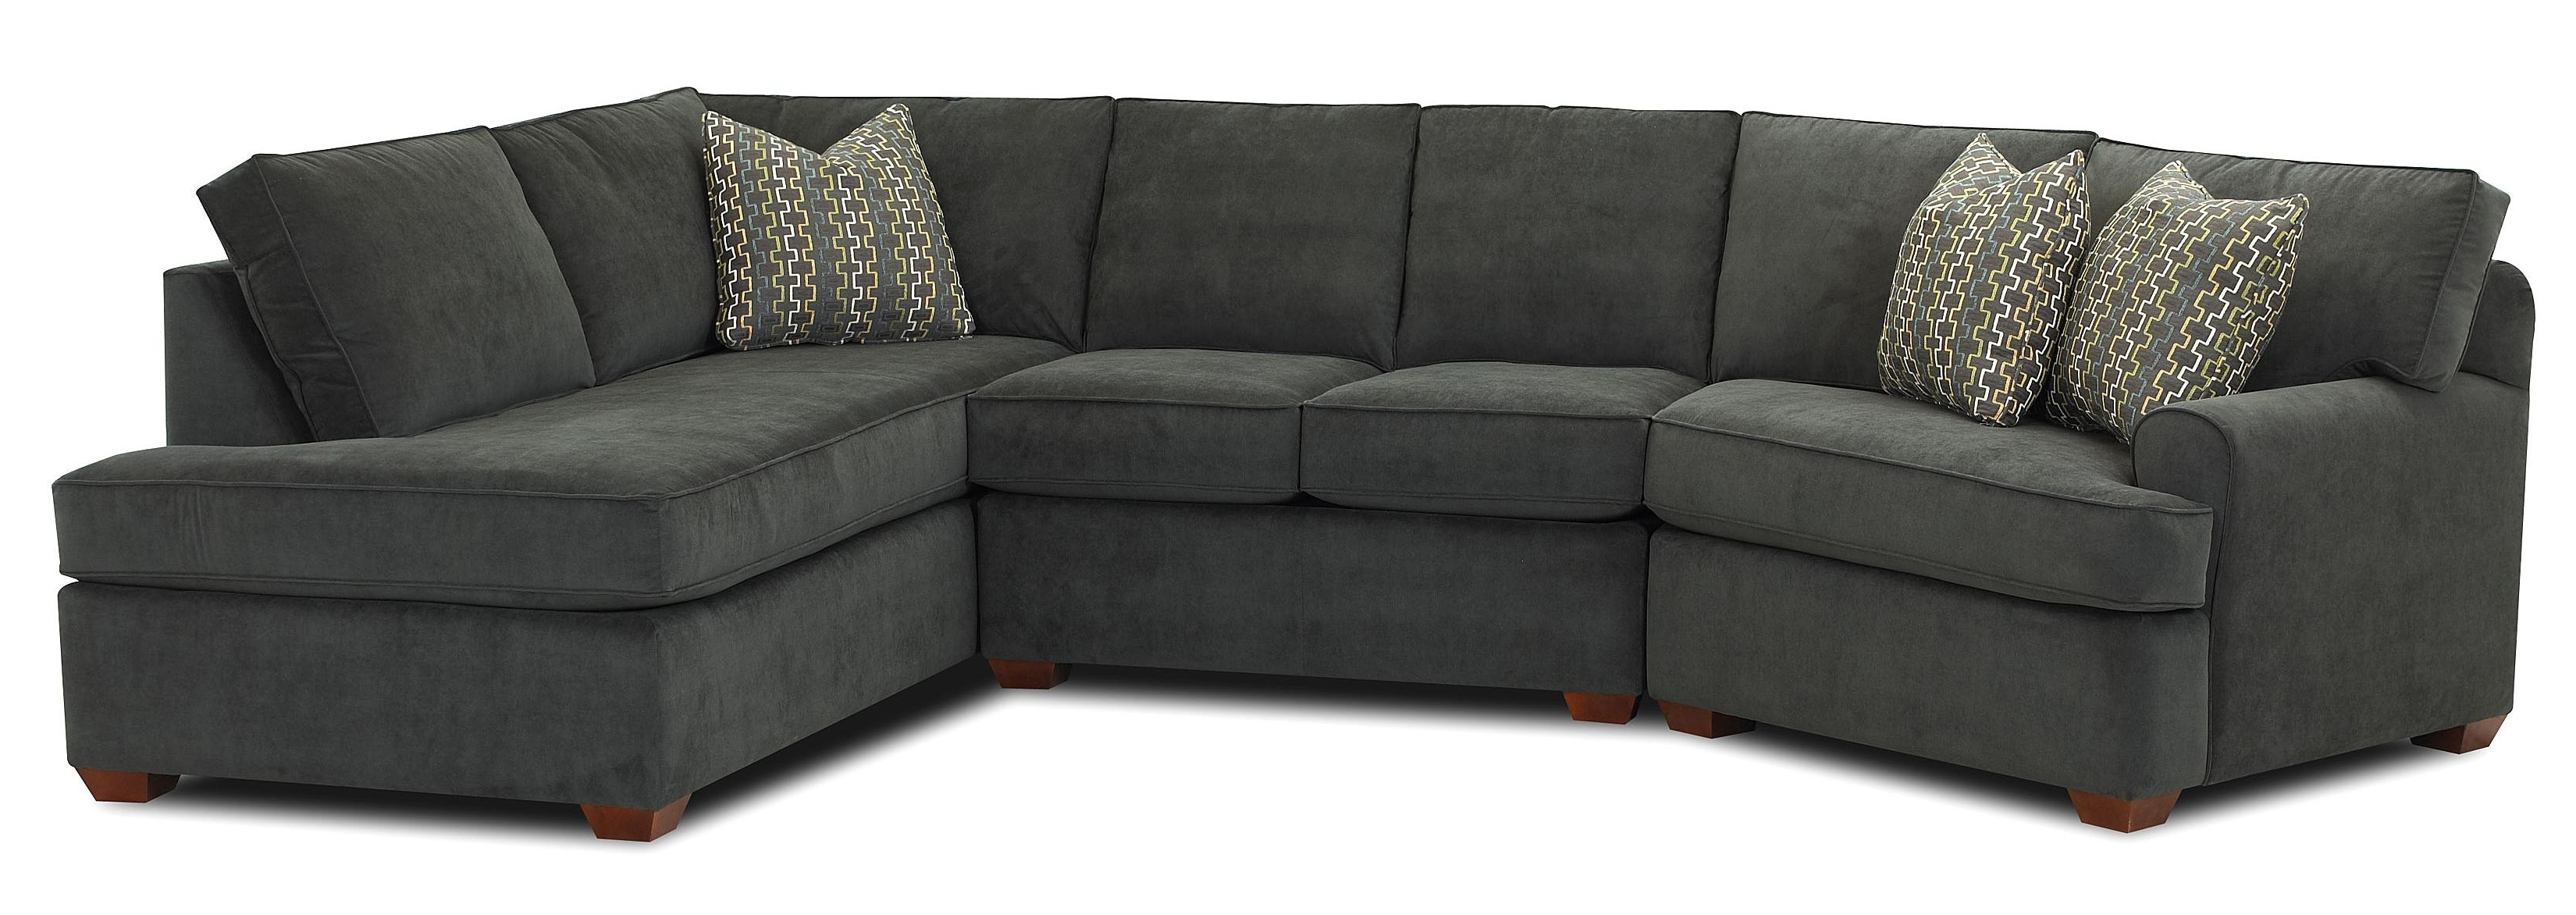 Most Recently Released Sectional Sofa Chaises Regarding Sectional Sofa With Right Facing Sofa Chaiseklaussner (View 6 of 15)